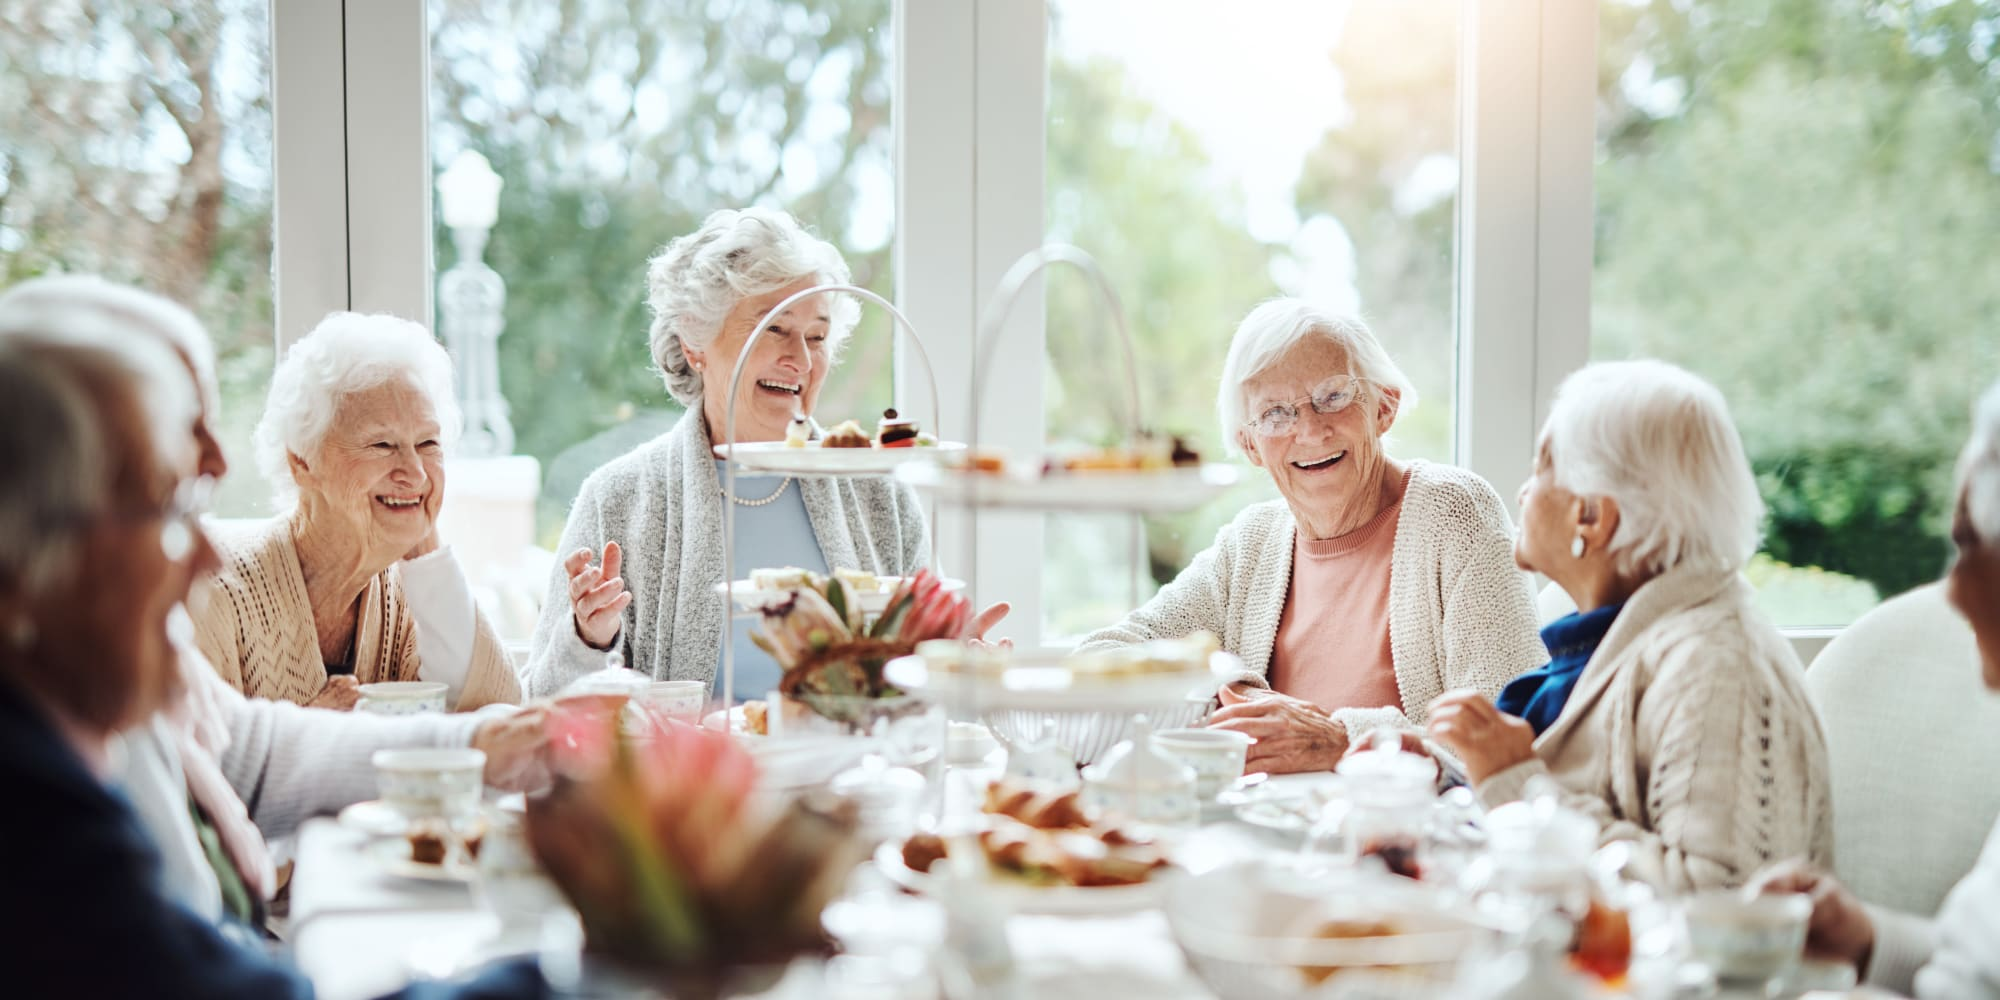 Activities & Events at Avenir Memory Care at Scottsdale in Scottsdale, Arizona.